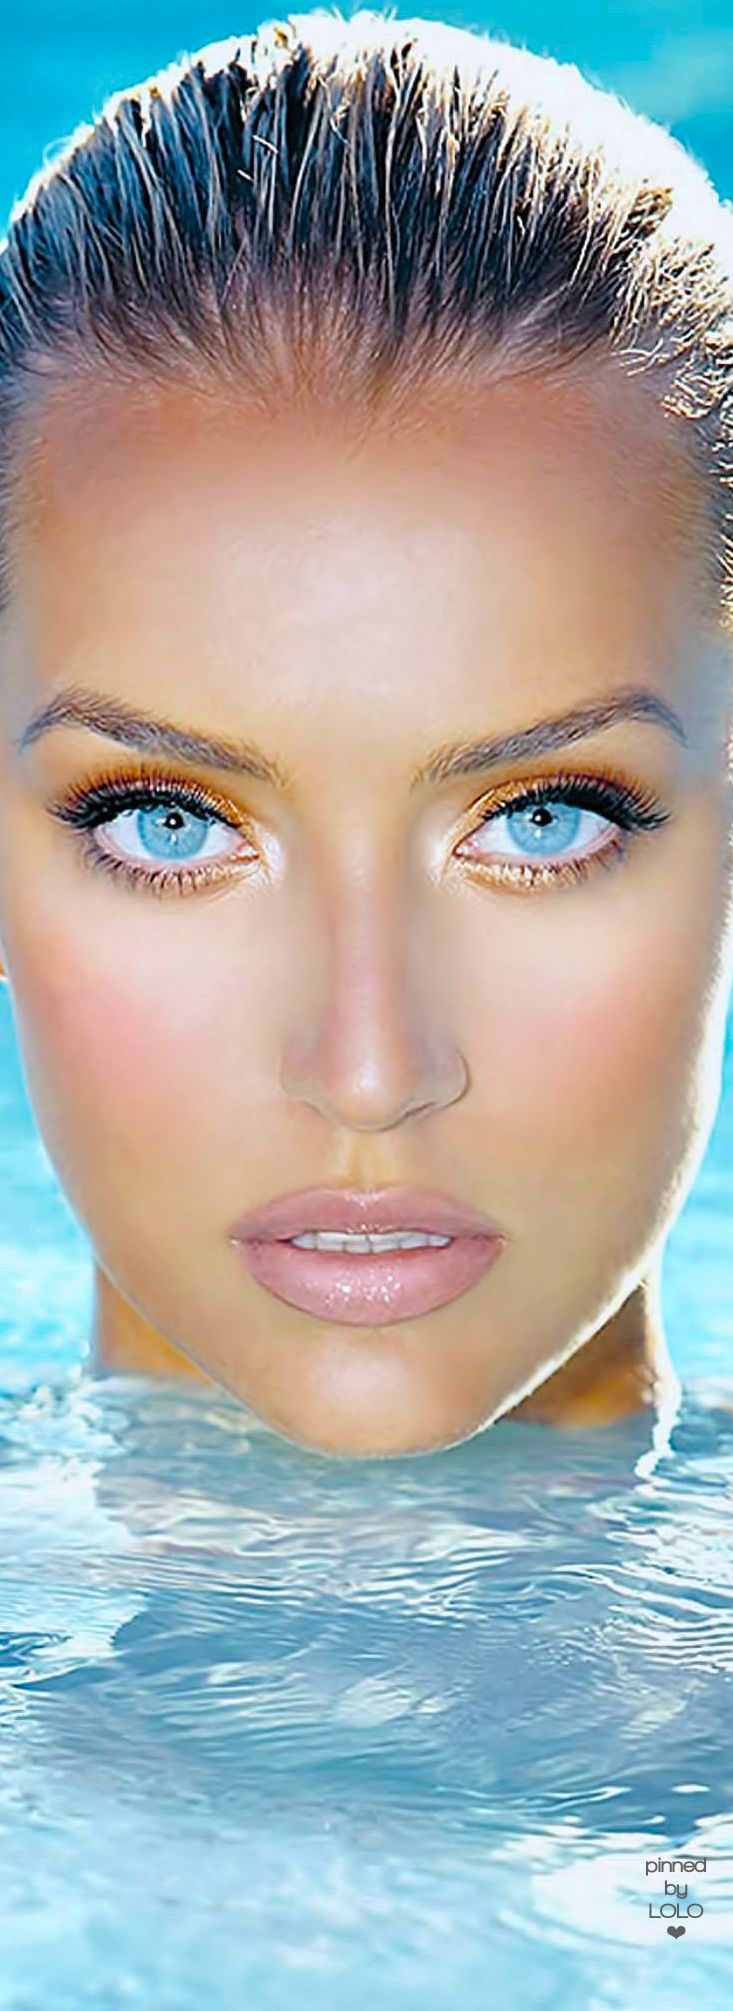 Beautiful Blue Eyes Cute Famous Girl Hair Listick: 12079 Best Beautiful Images On Pinterest